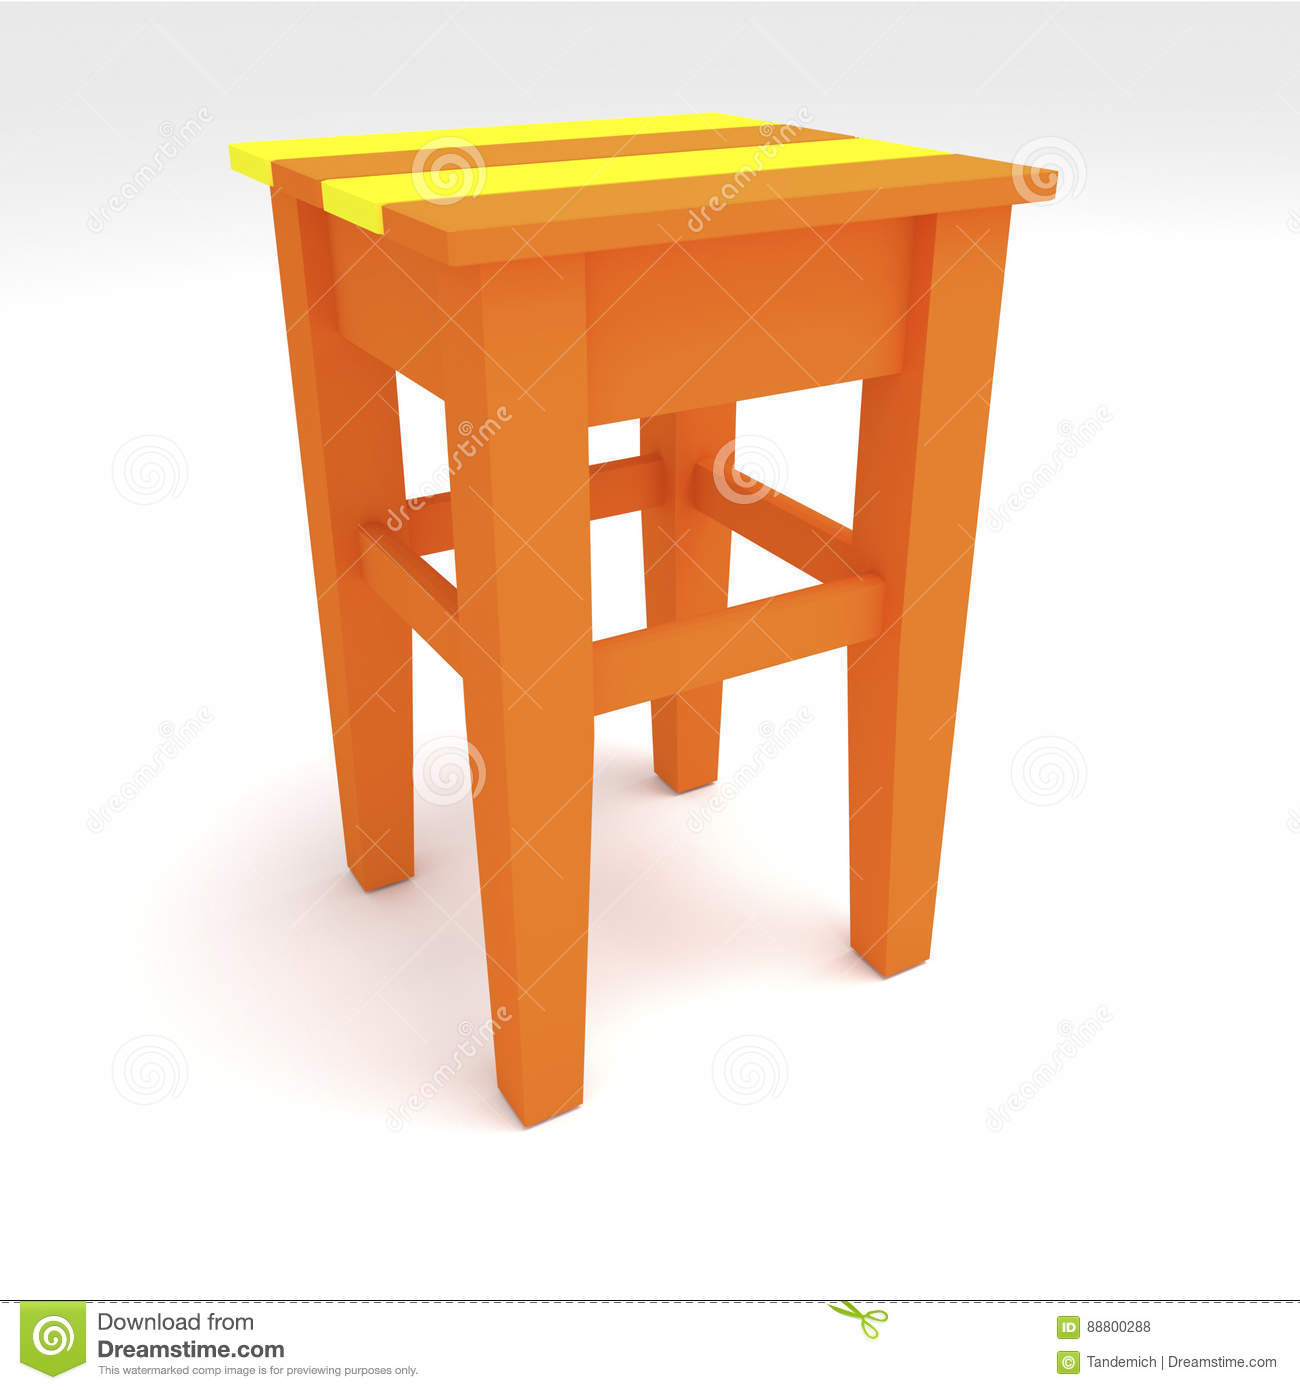 Superb 3D Render 3D Illustration The Evolution Of A Wooden Stool Bralicious Painted Fabric Chair Ideas Braliciousco